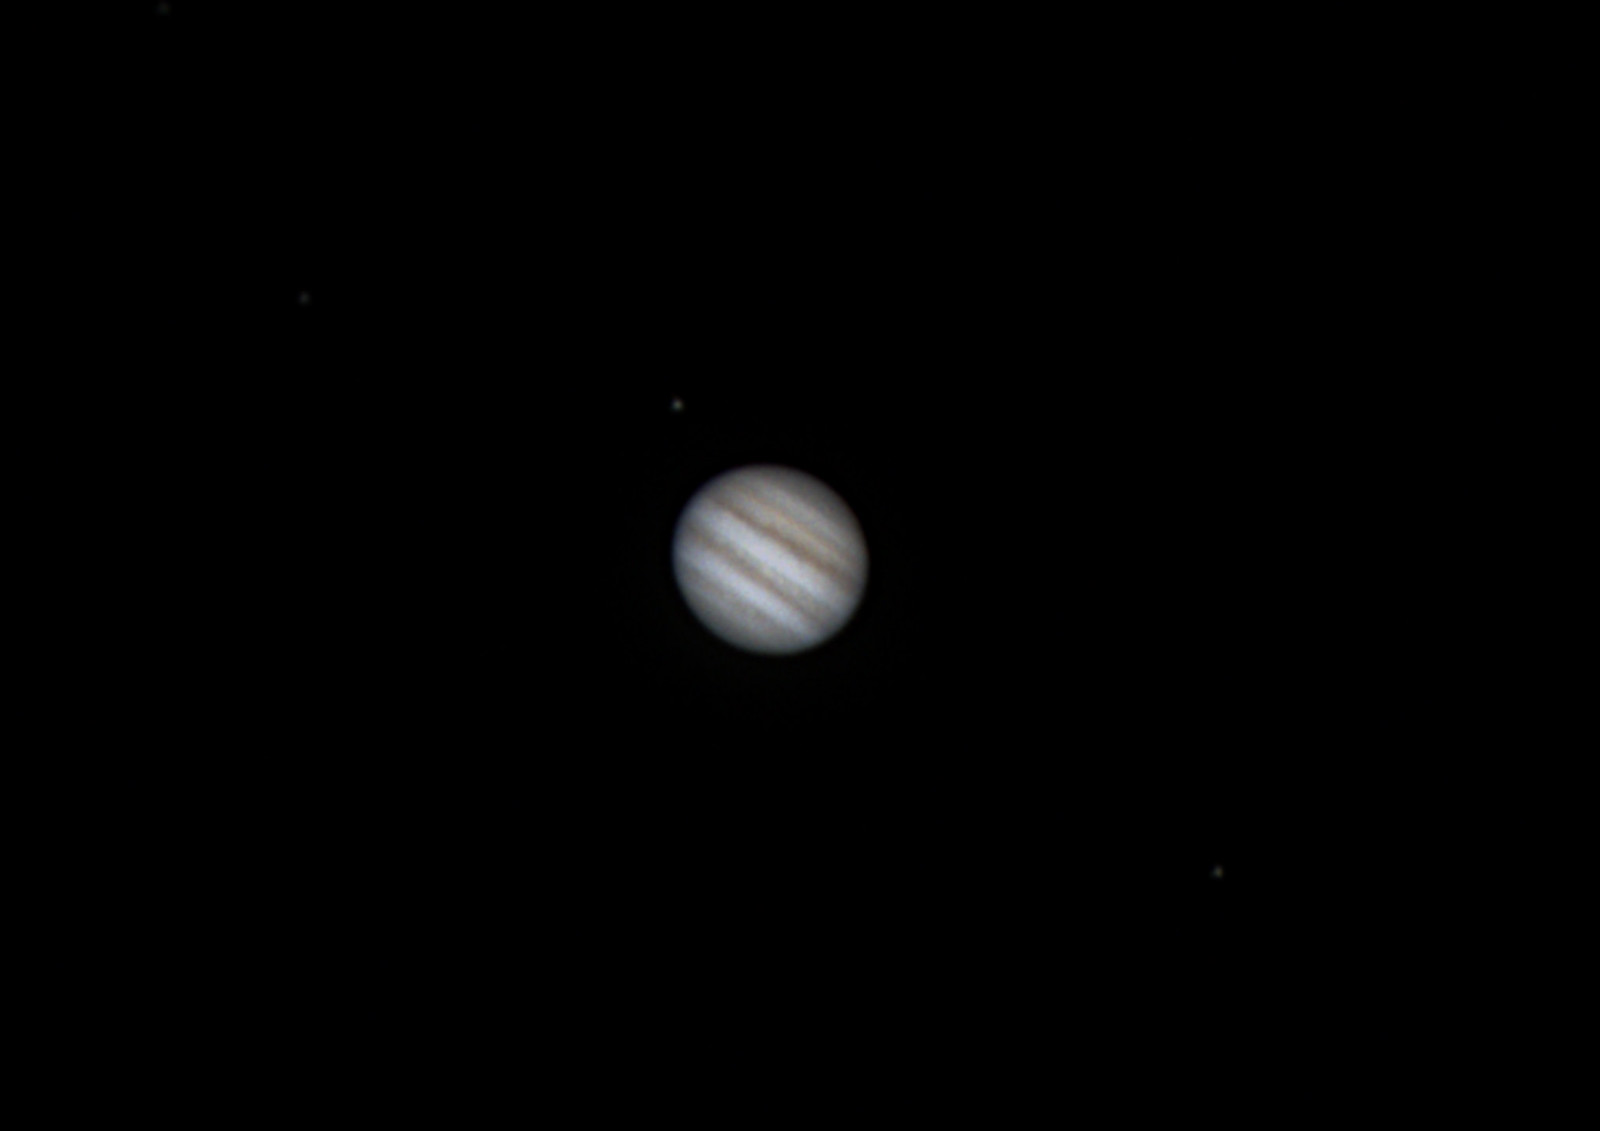 Jupiter 7Apr2017 with 3 moons